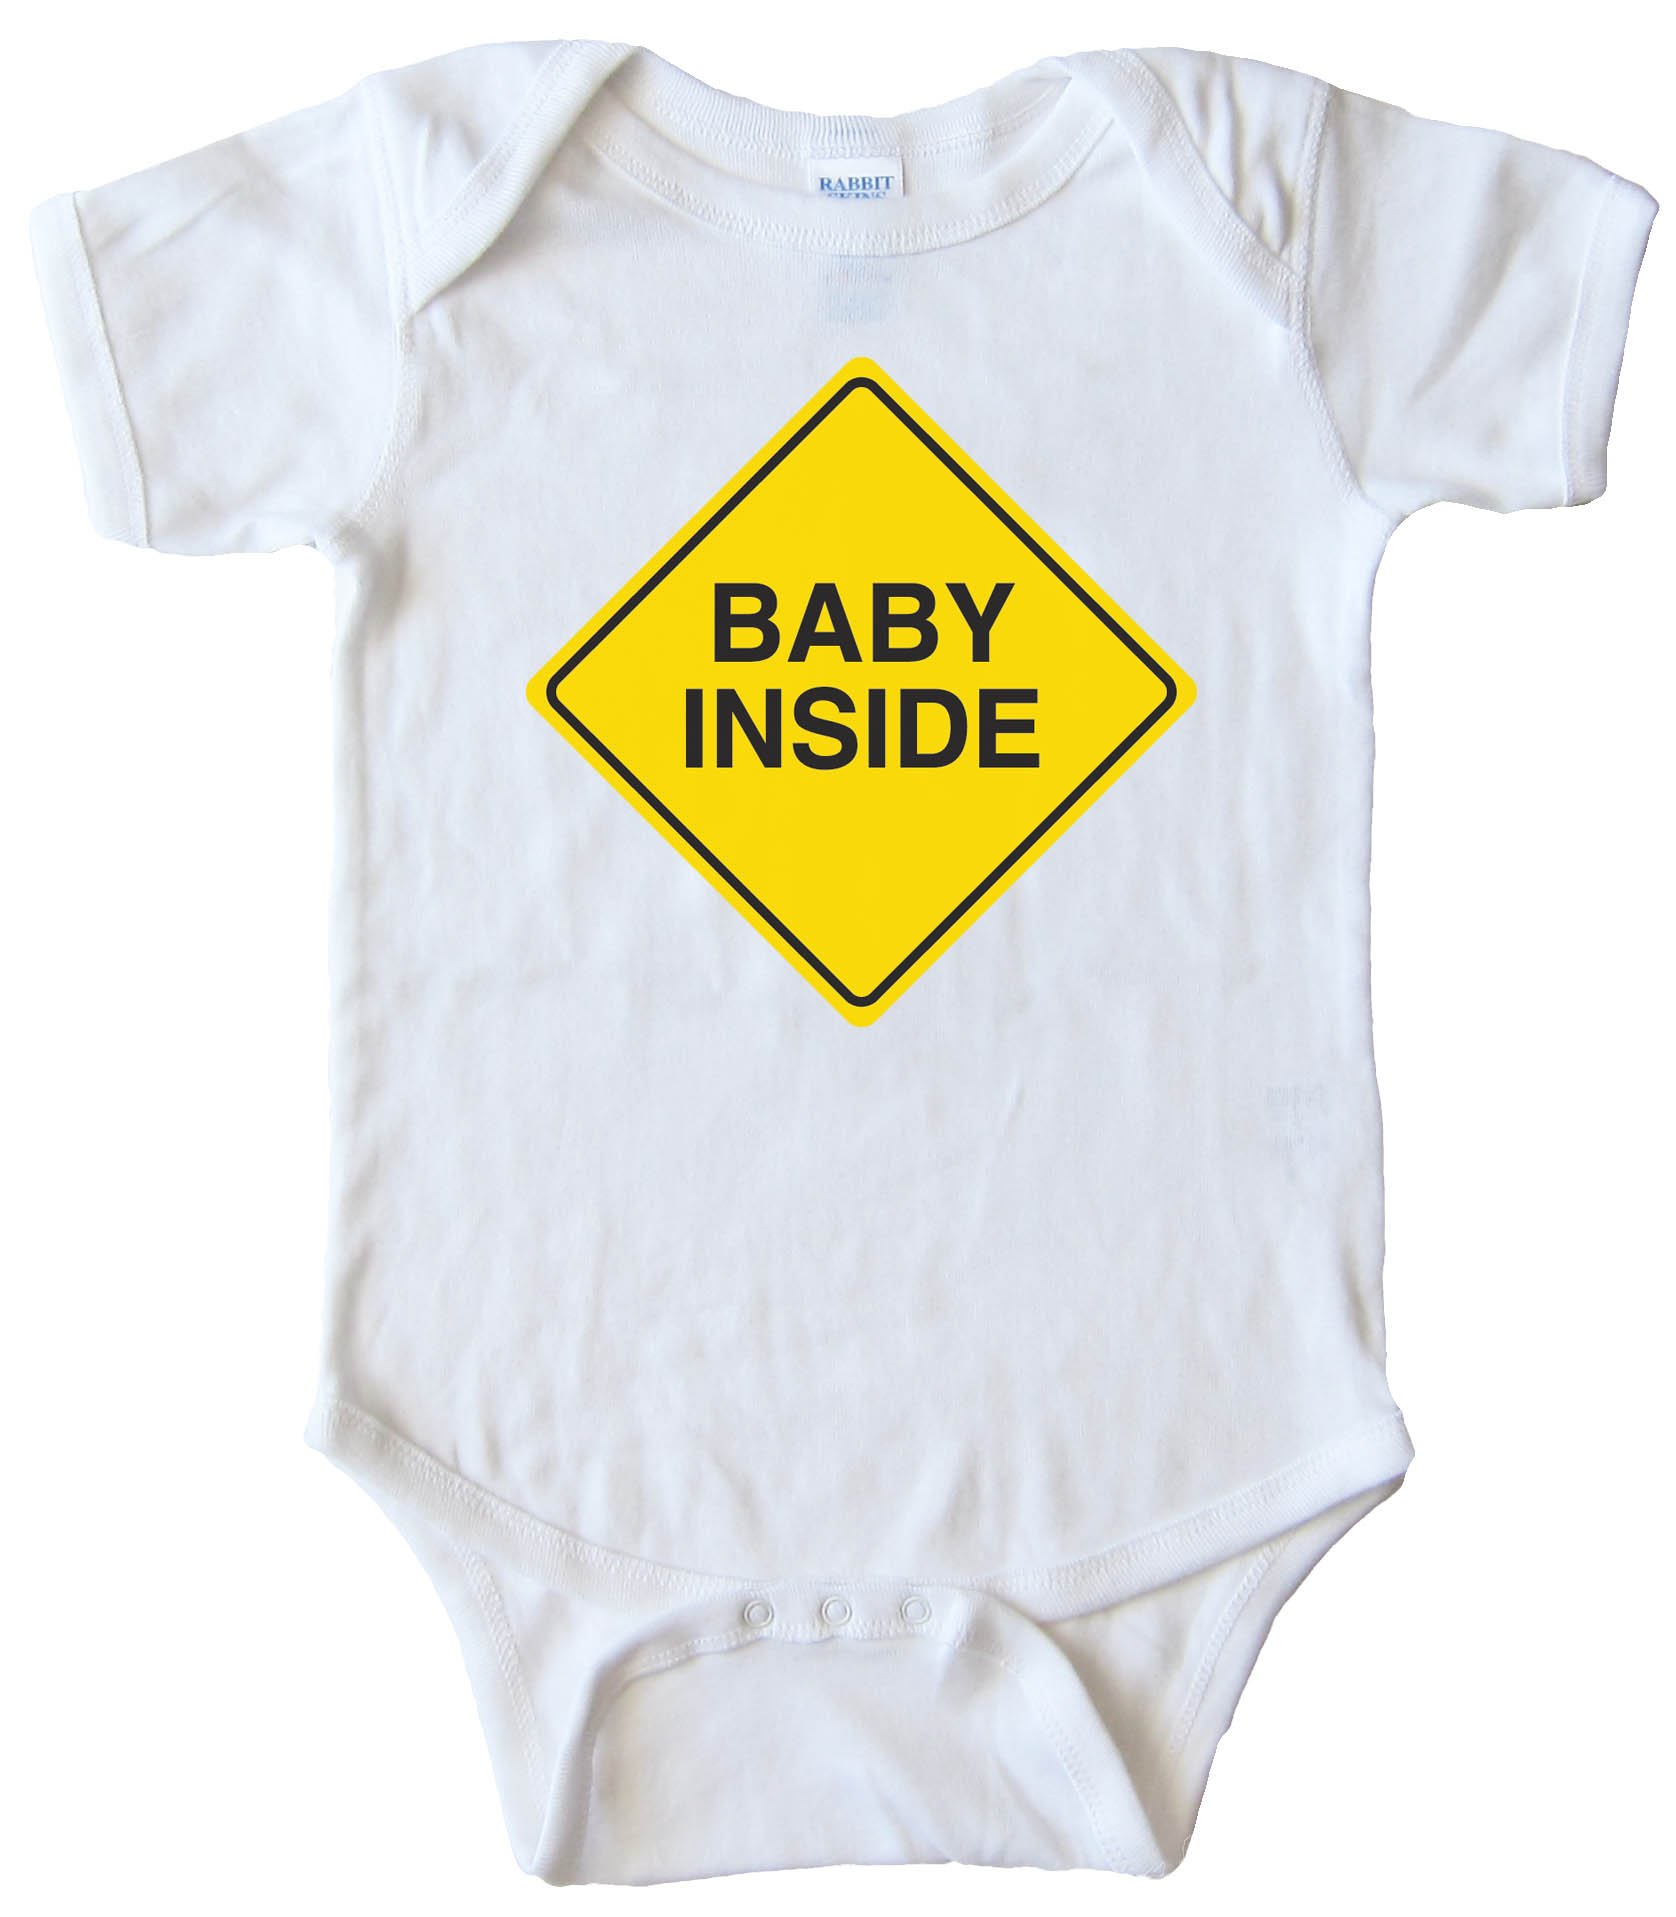 Baby On Board Baby Inside - Baby Bodysuit